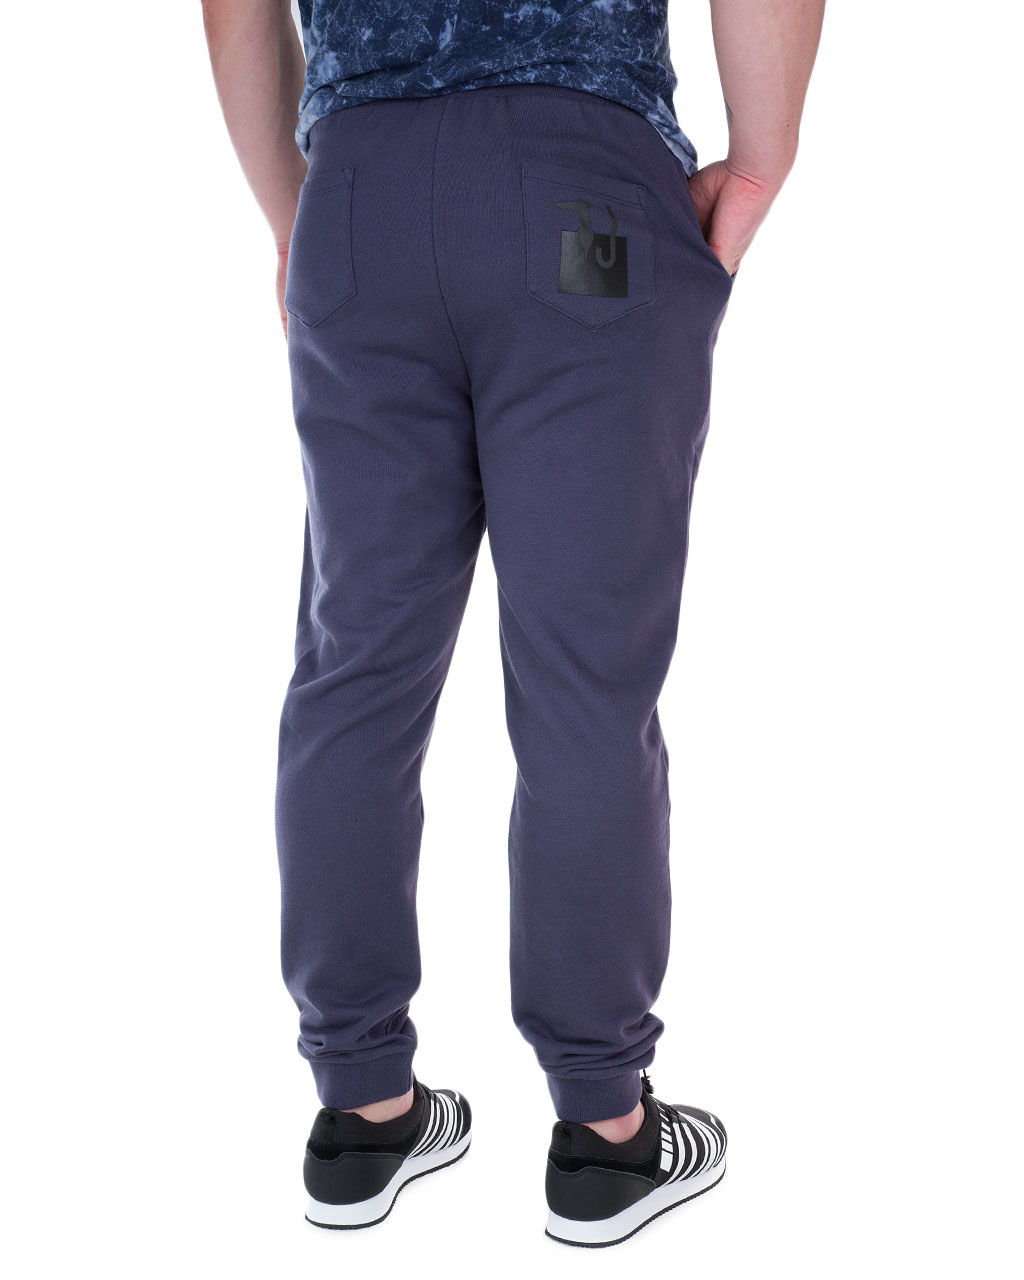 Men's trousers 52P00094-1T002297-U290/9 (3)